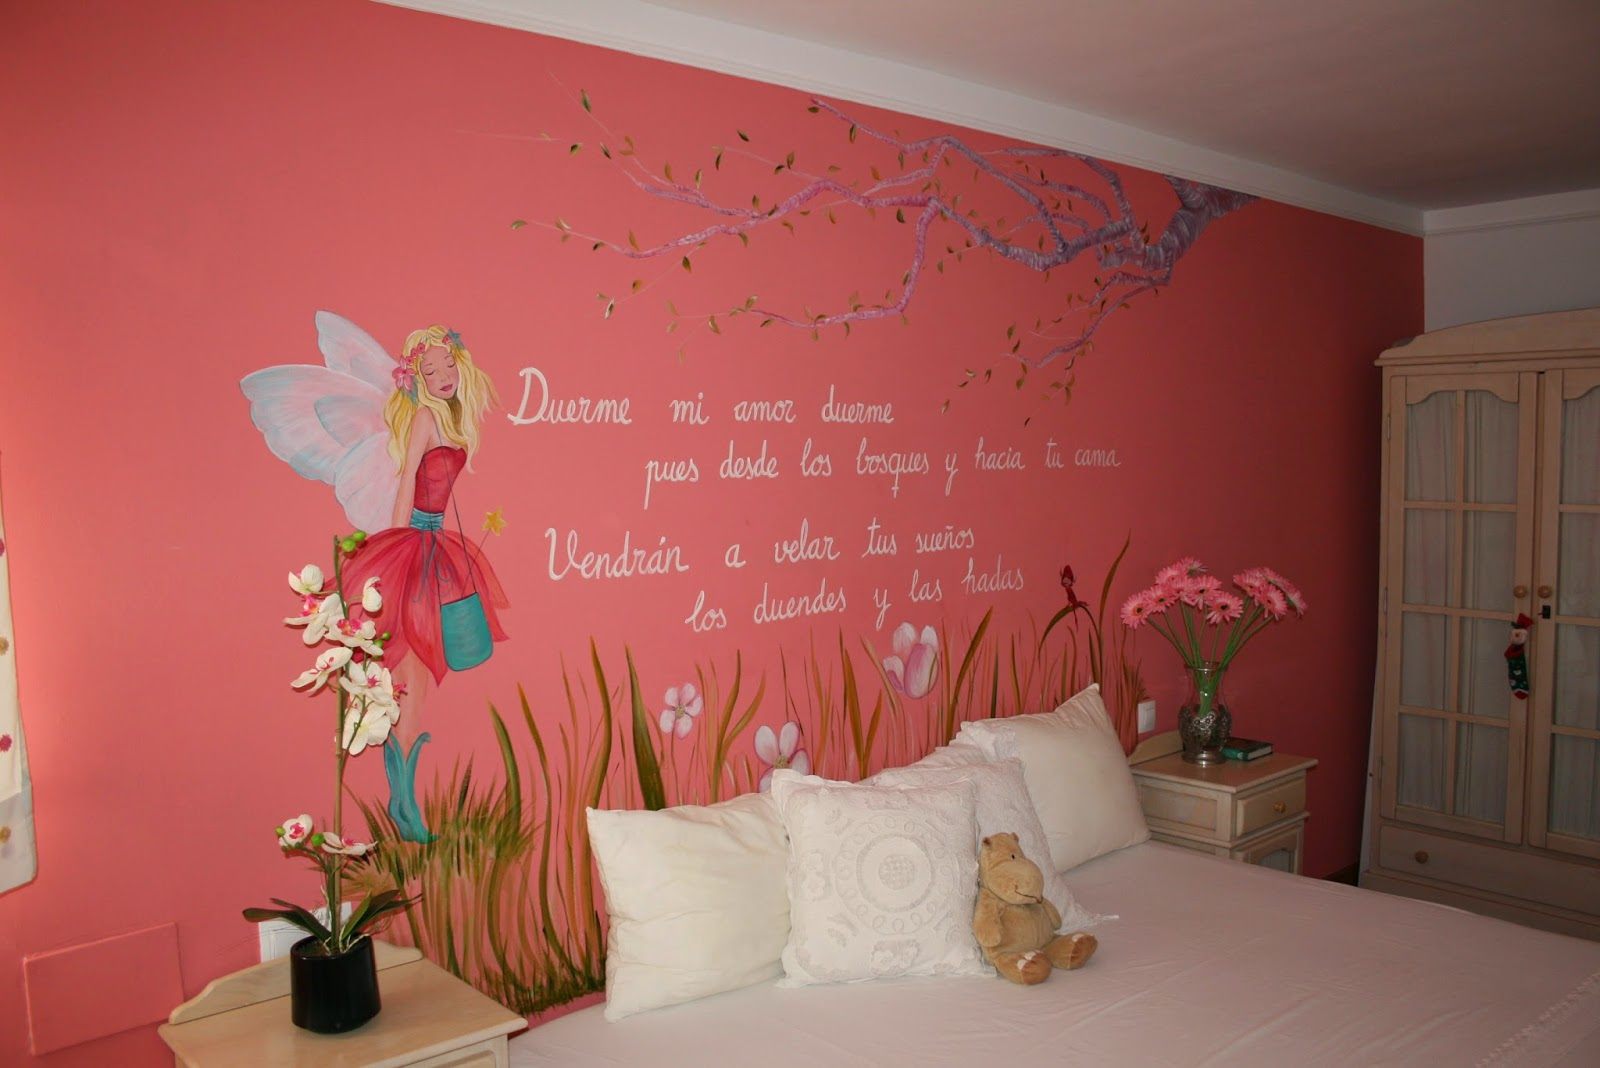 Pintura mural arte en pared y murales decorativos en for Pared habitacion infantil